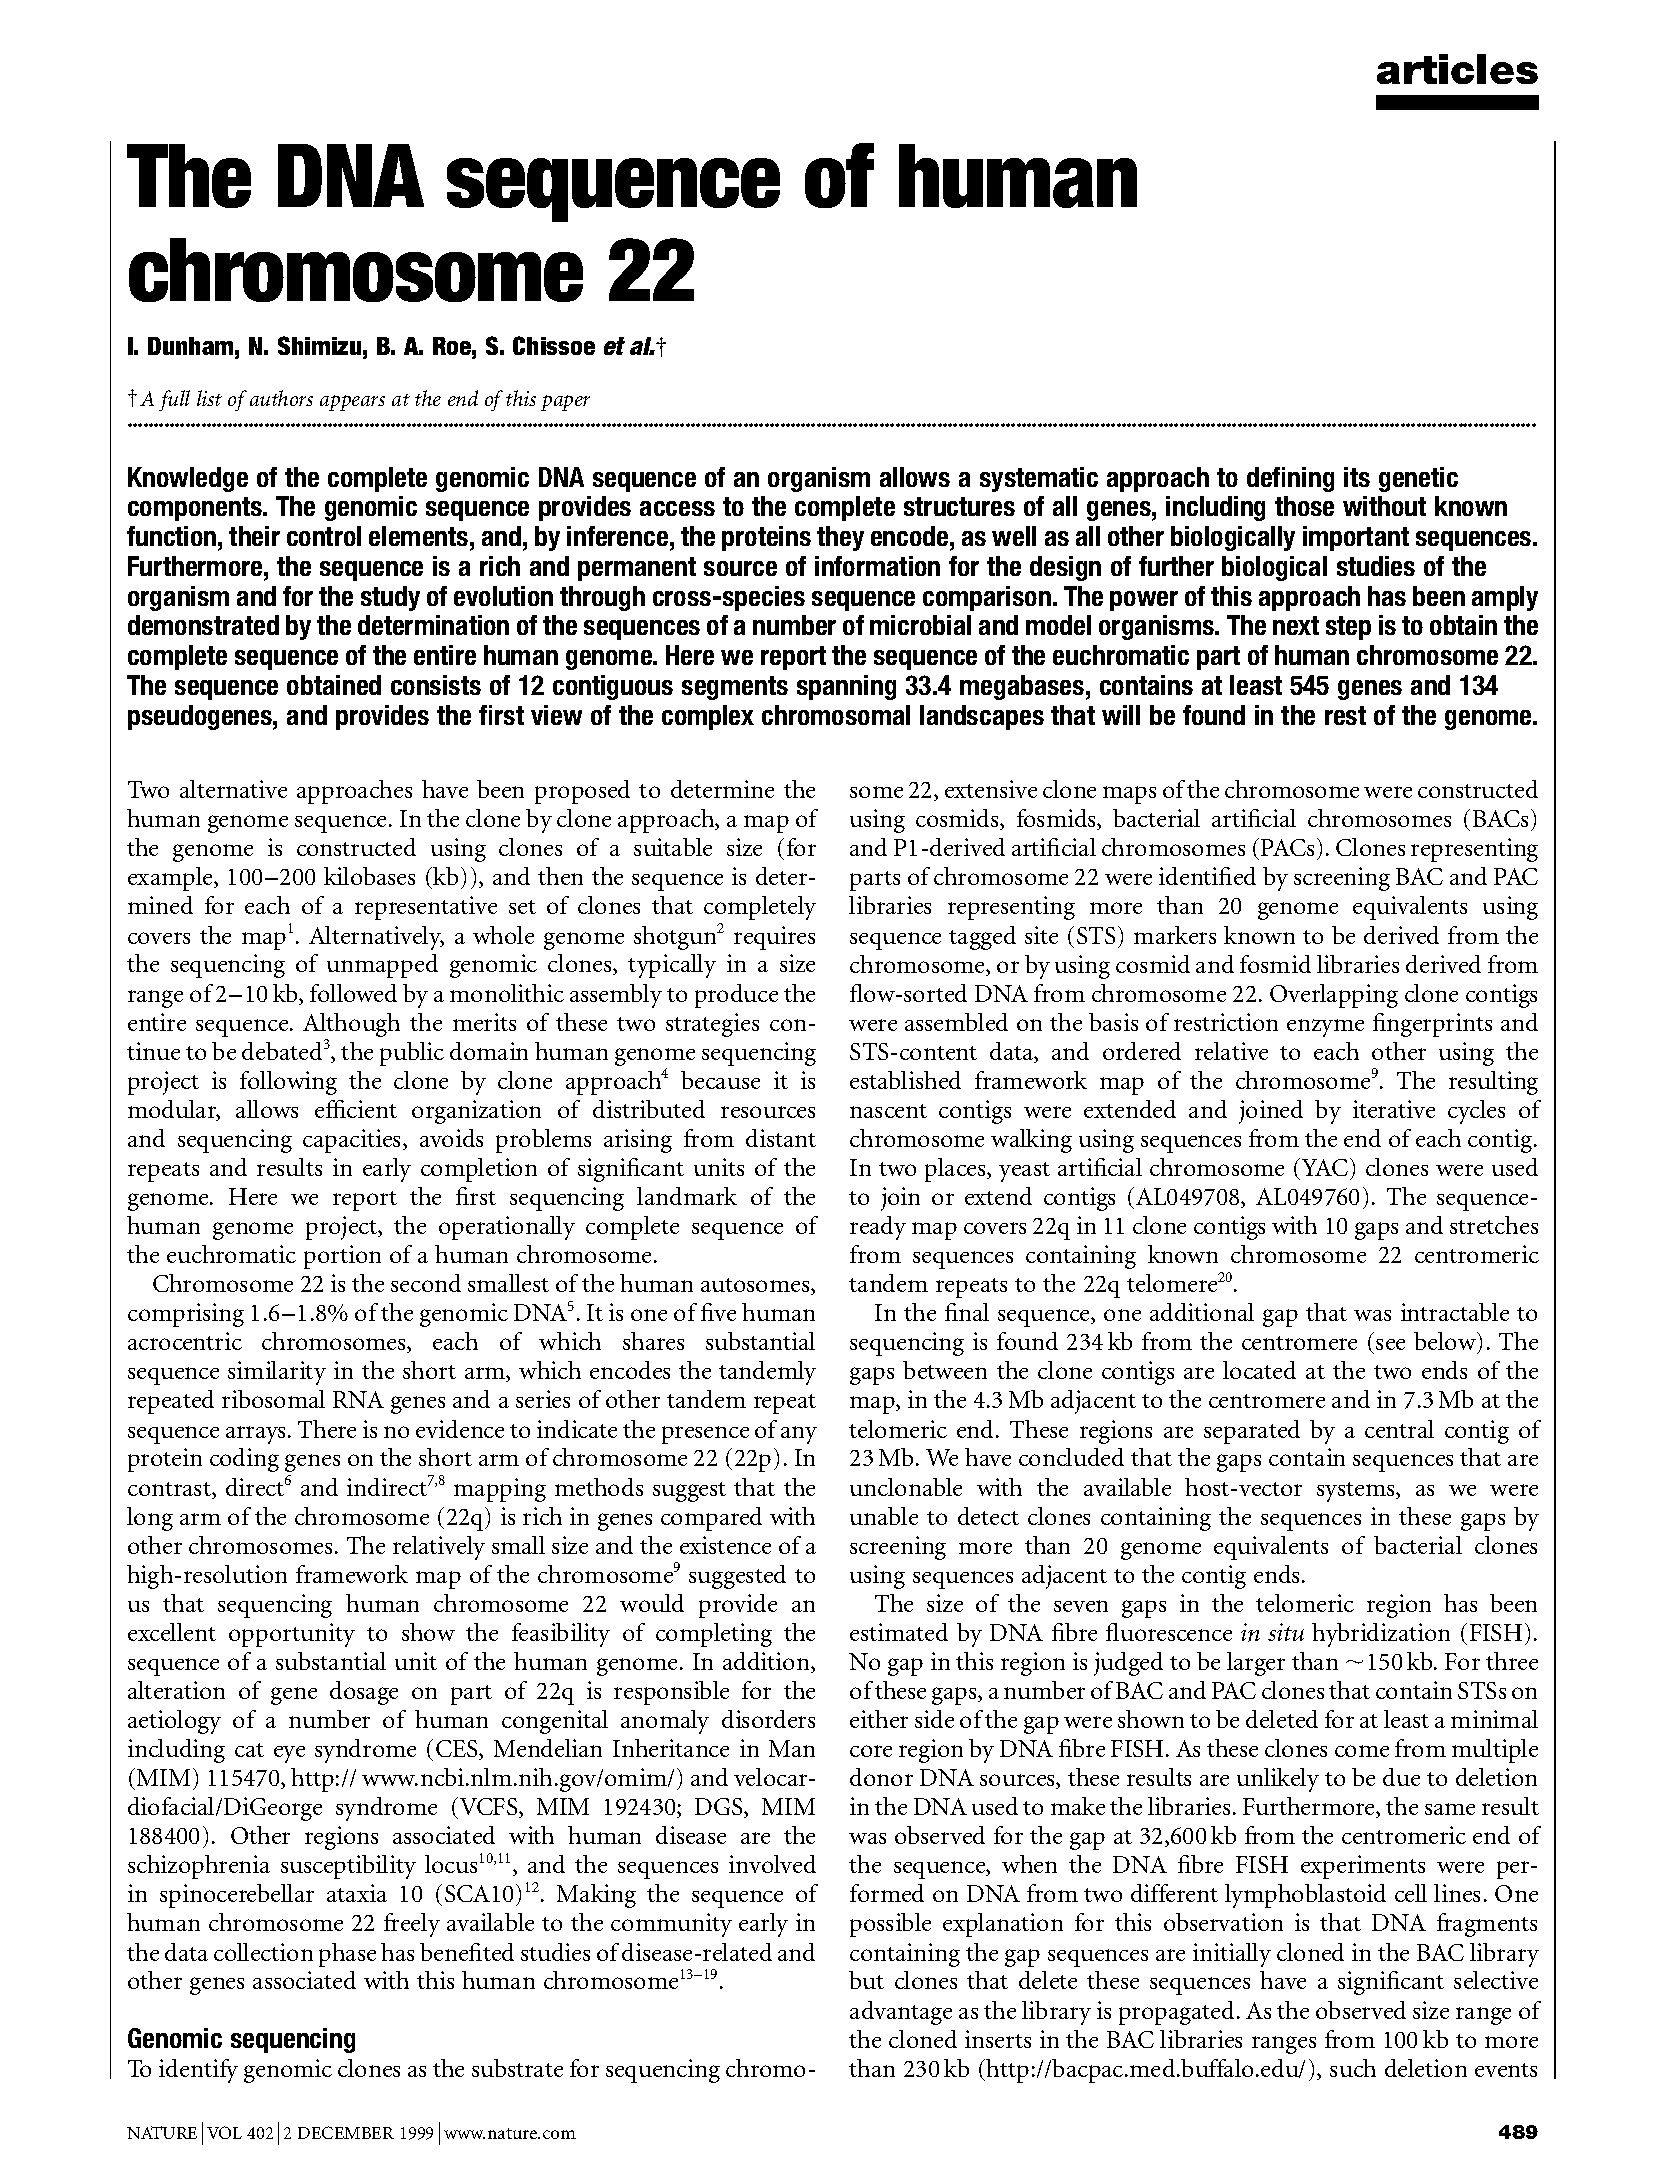 """page of text from a research article, the title reads: """"The DNA sequencing of Chromosome 22"""""""